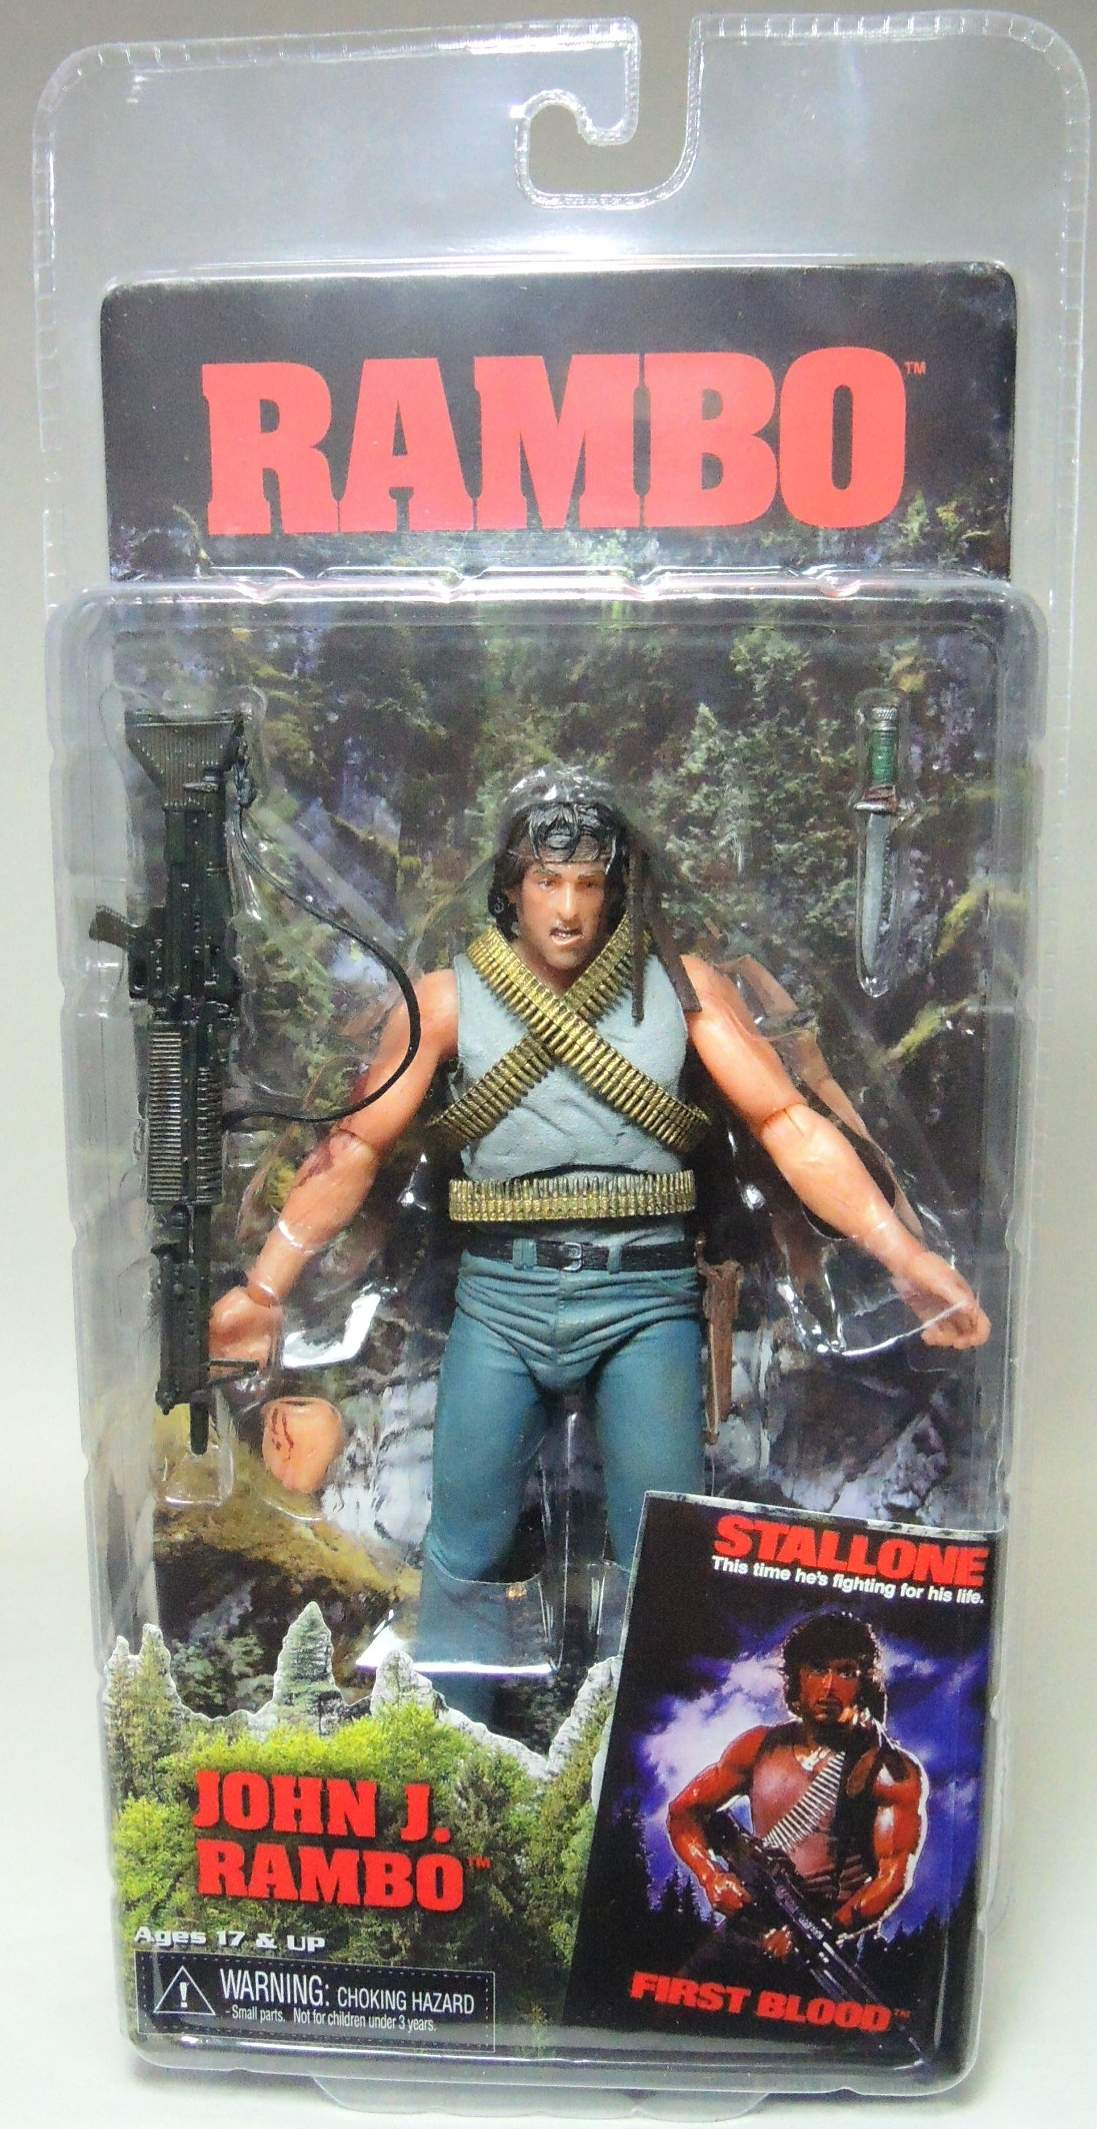 Neca Rambo Series 1 First Blood John J Rambo Action Figure